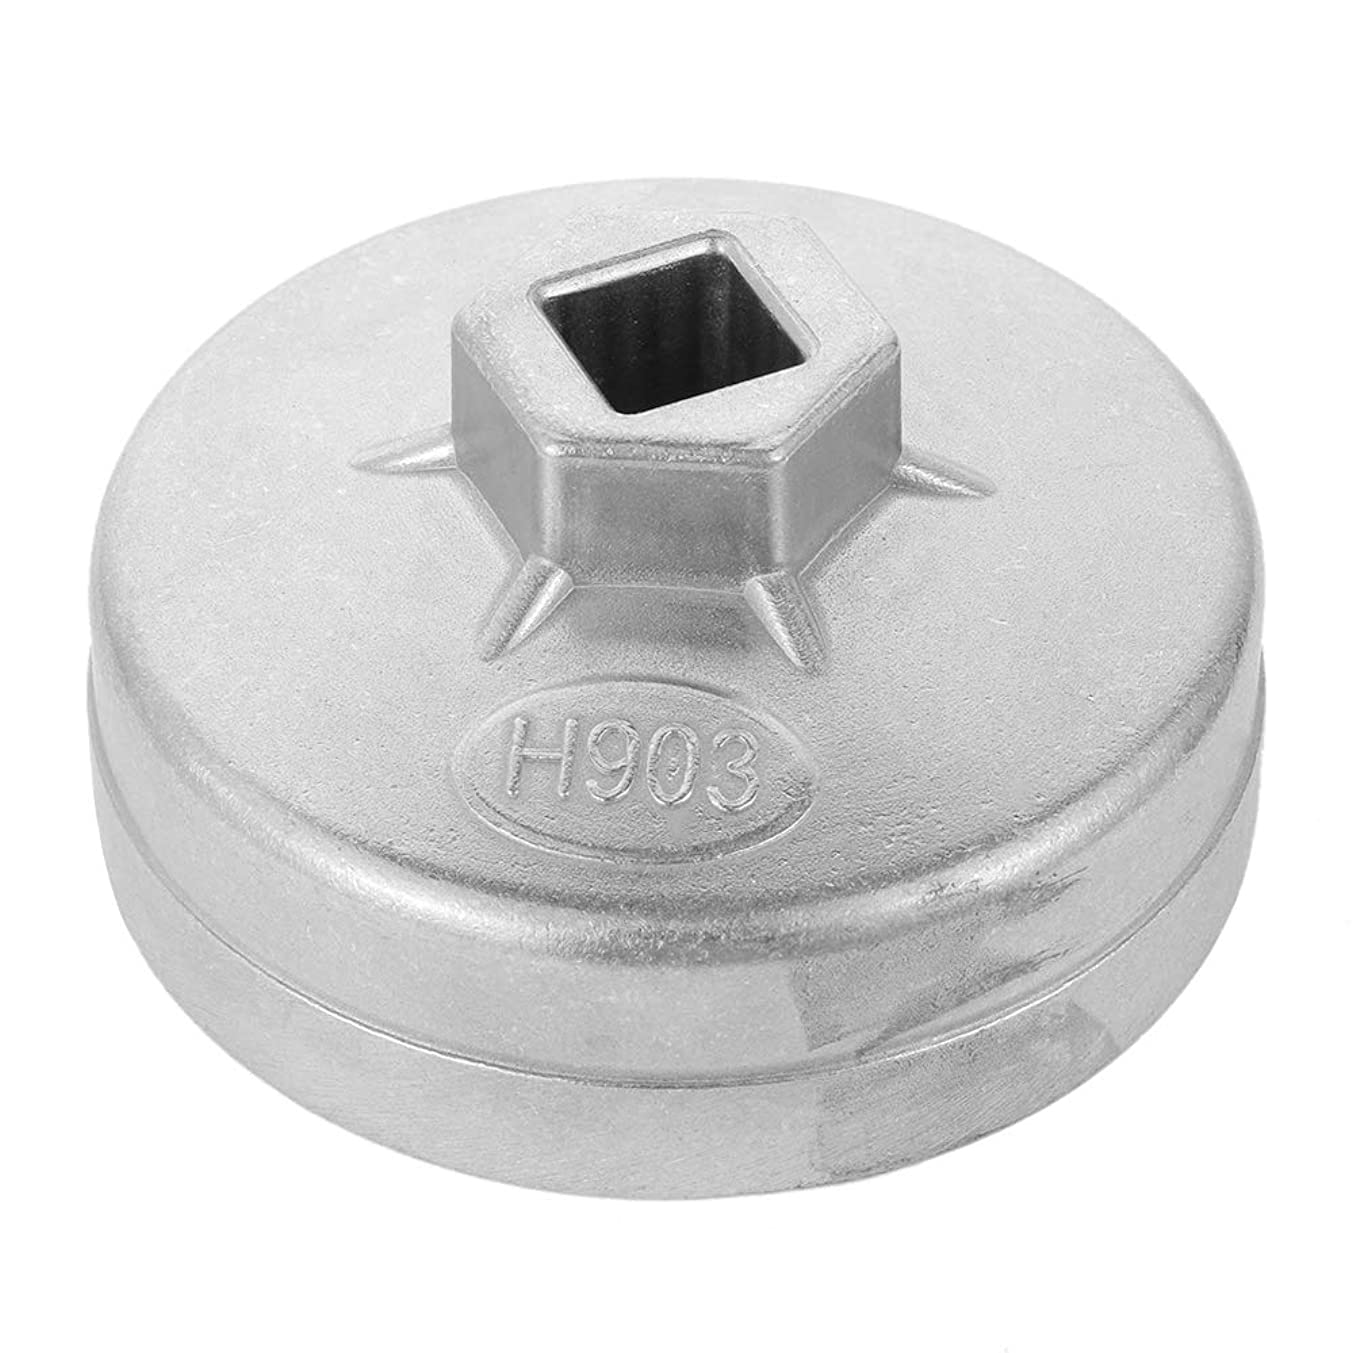 okdeals 903 74mm 14 Flute Aluminum Oil Filter Wrench Socket Remover Tool